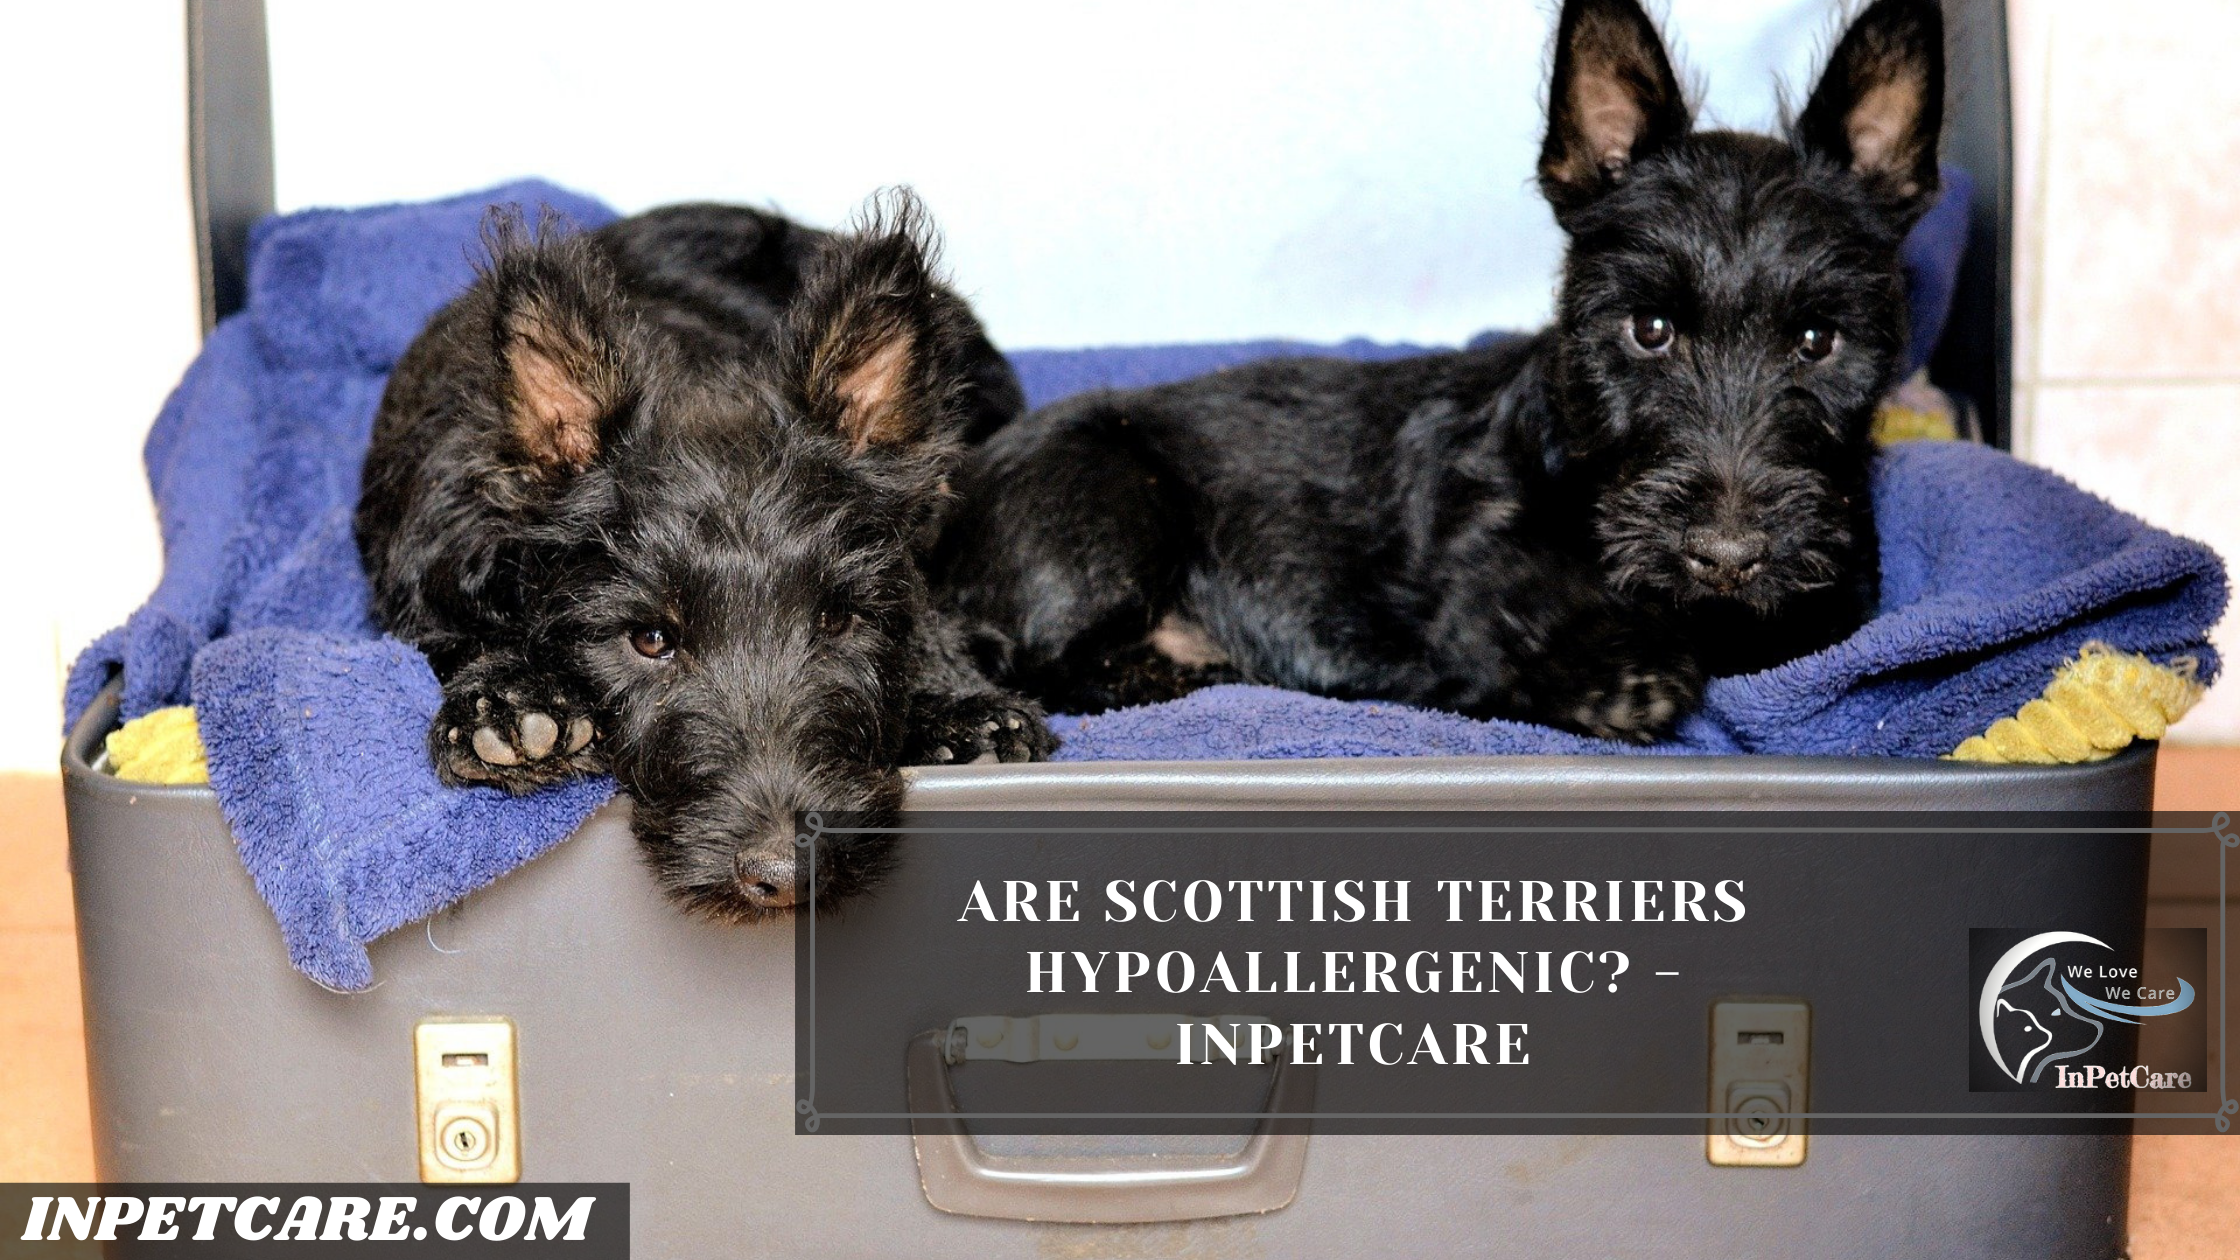 Are Scottish Terriers Hypoallergenic? - InPetCare